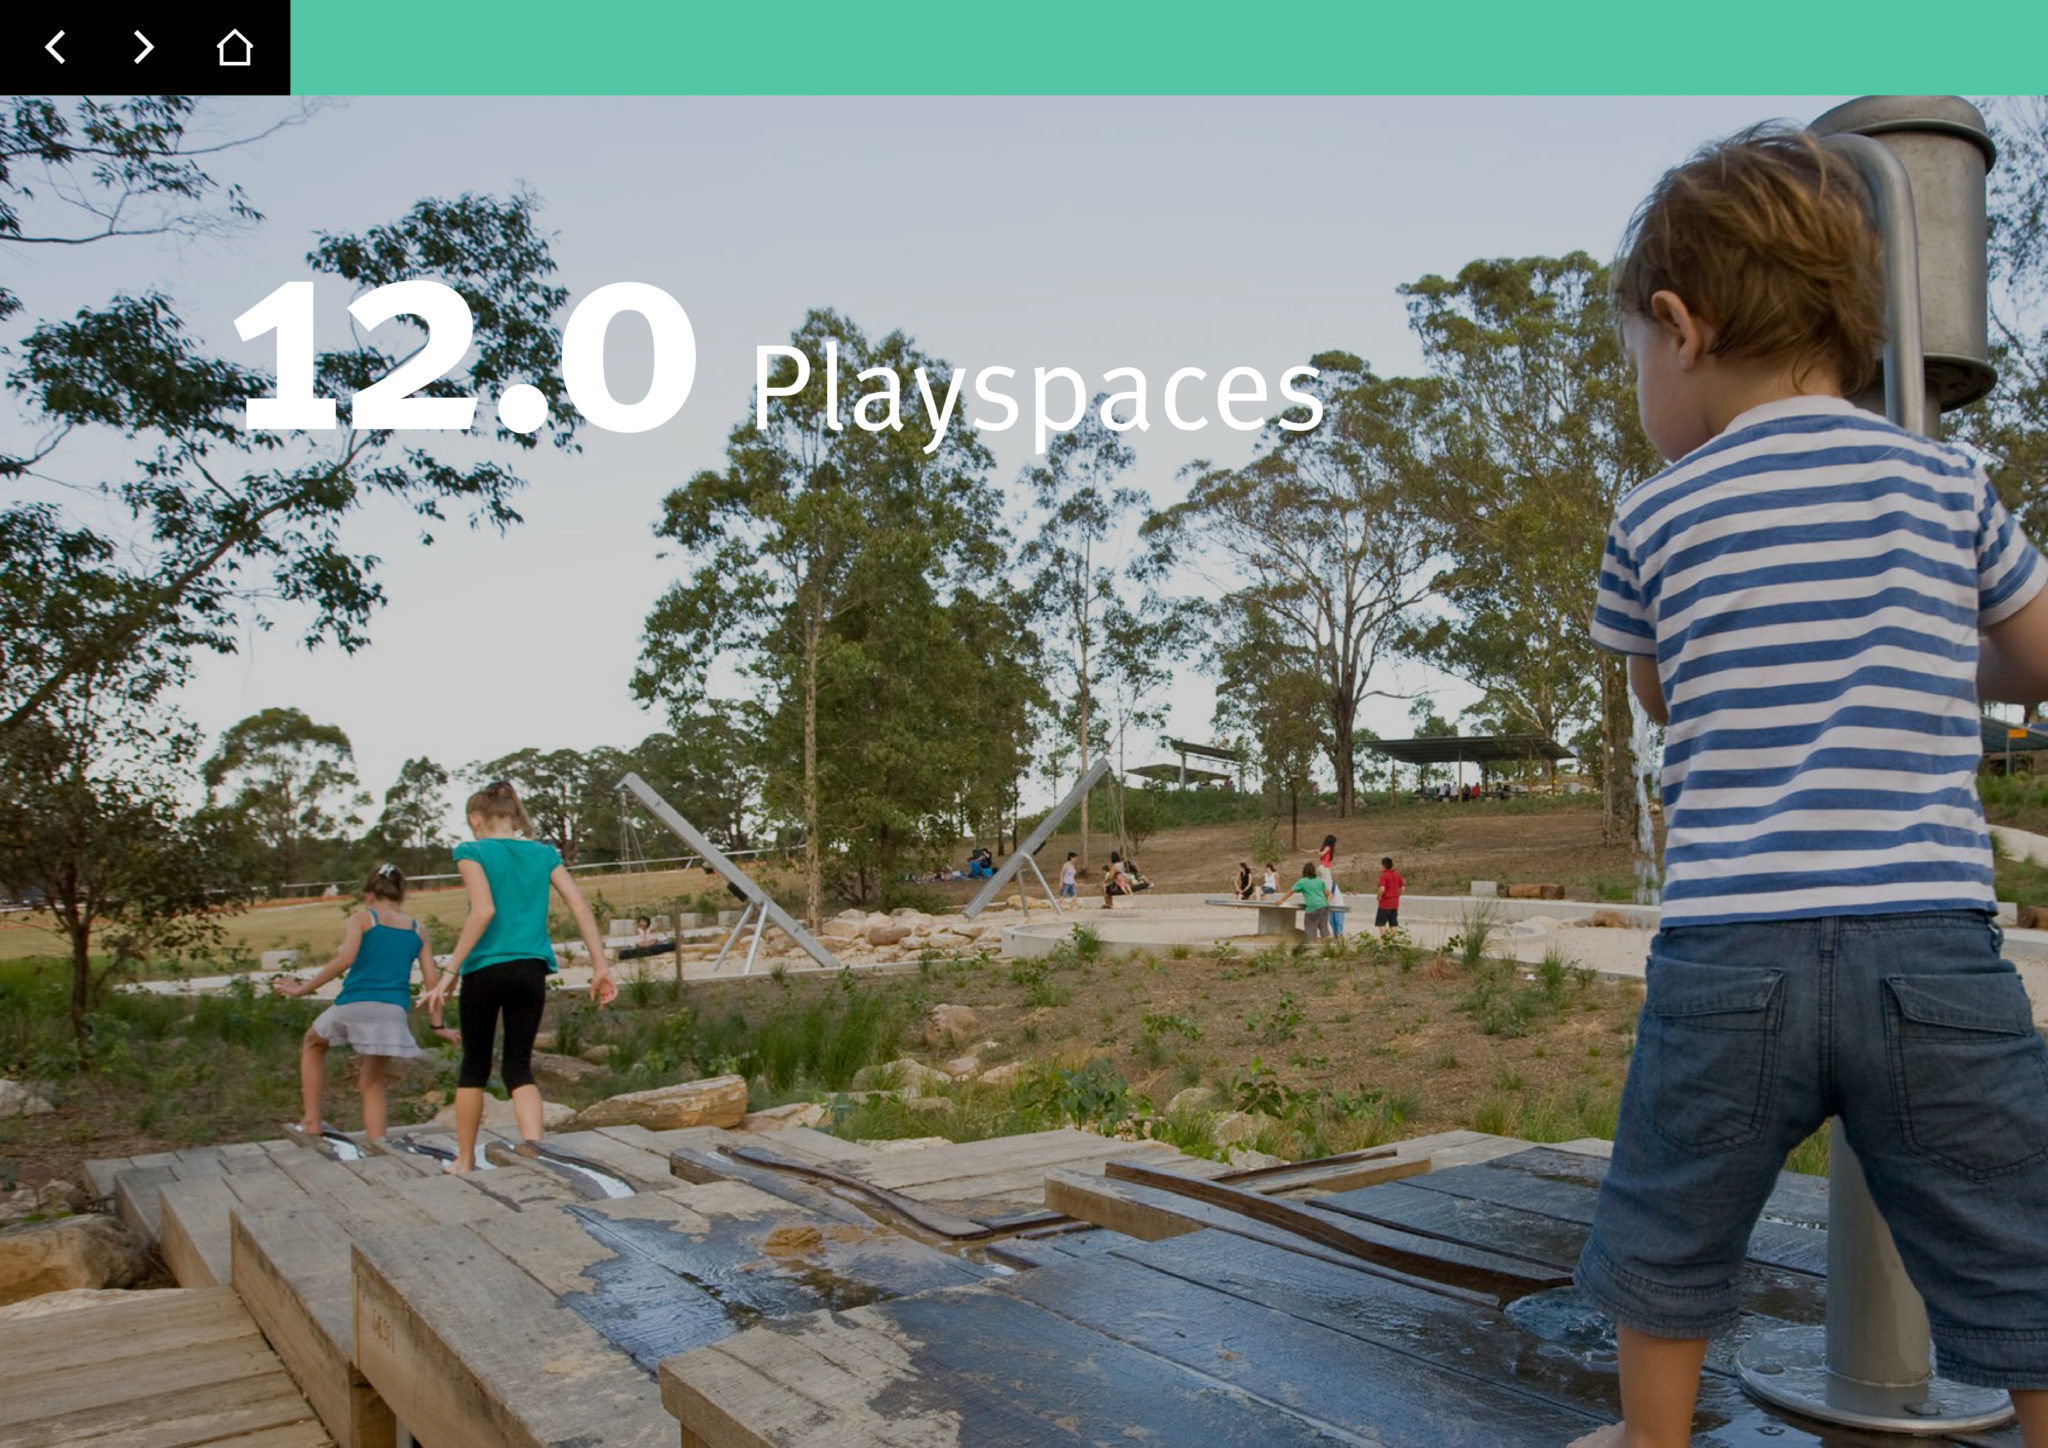 Western Sydney Parklands Design Manual Playspaces (Photo: Simon Wood)